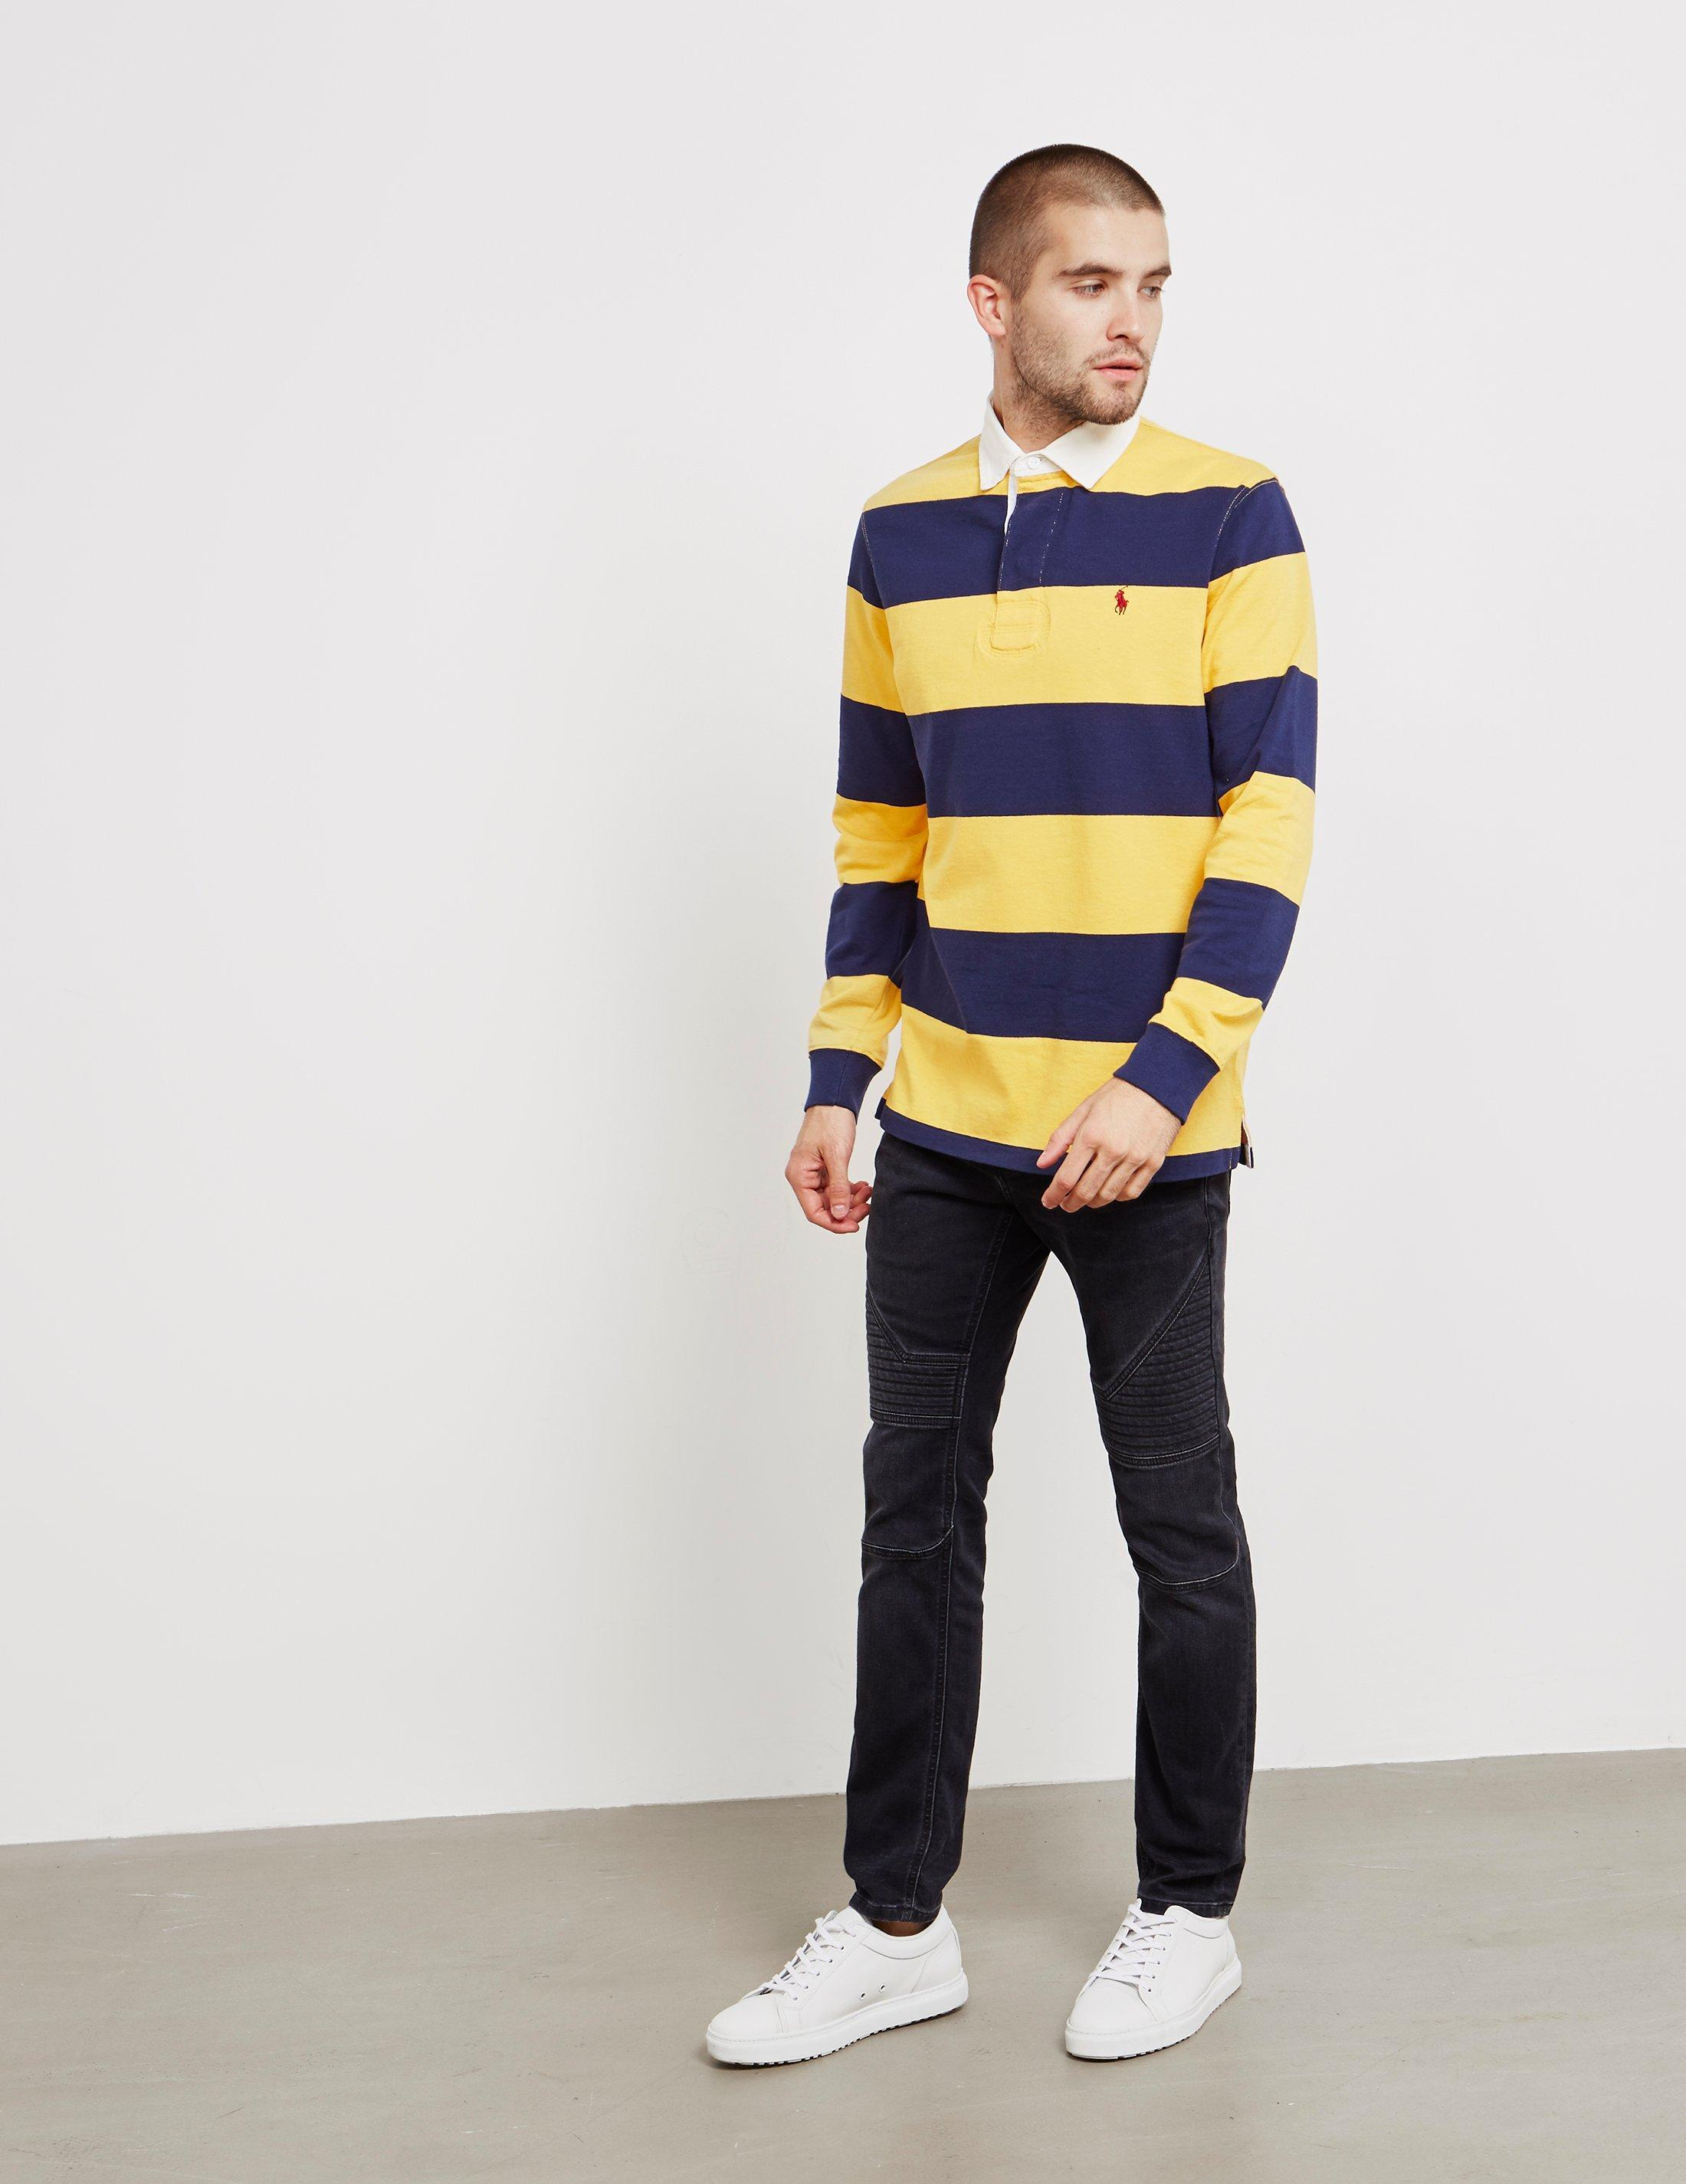 2aa6b566cb3 Lyst - Polo Ralph Lauren Stripe Rugby Long Sleeve Polo Shirt Yellow in  Yellow for Men - Save 55%